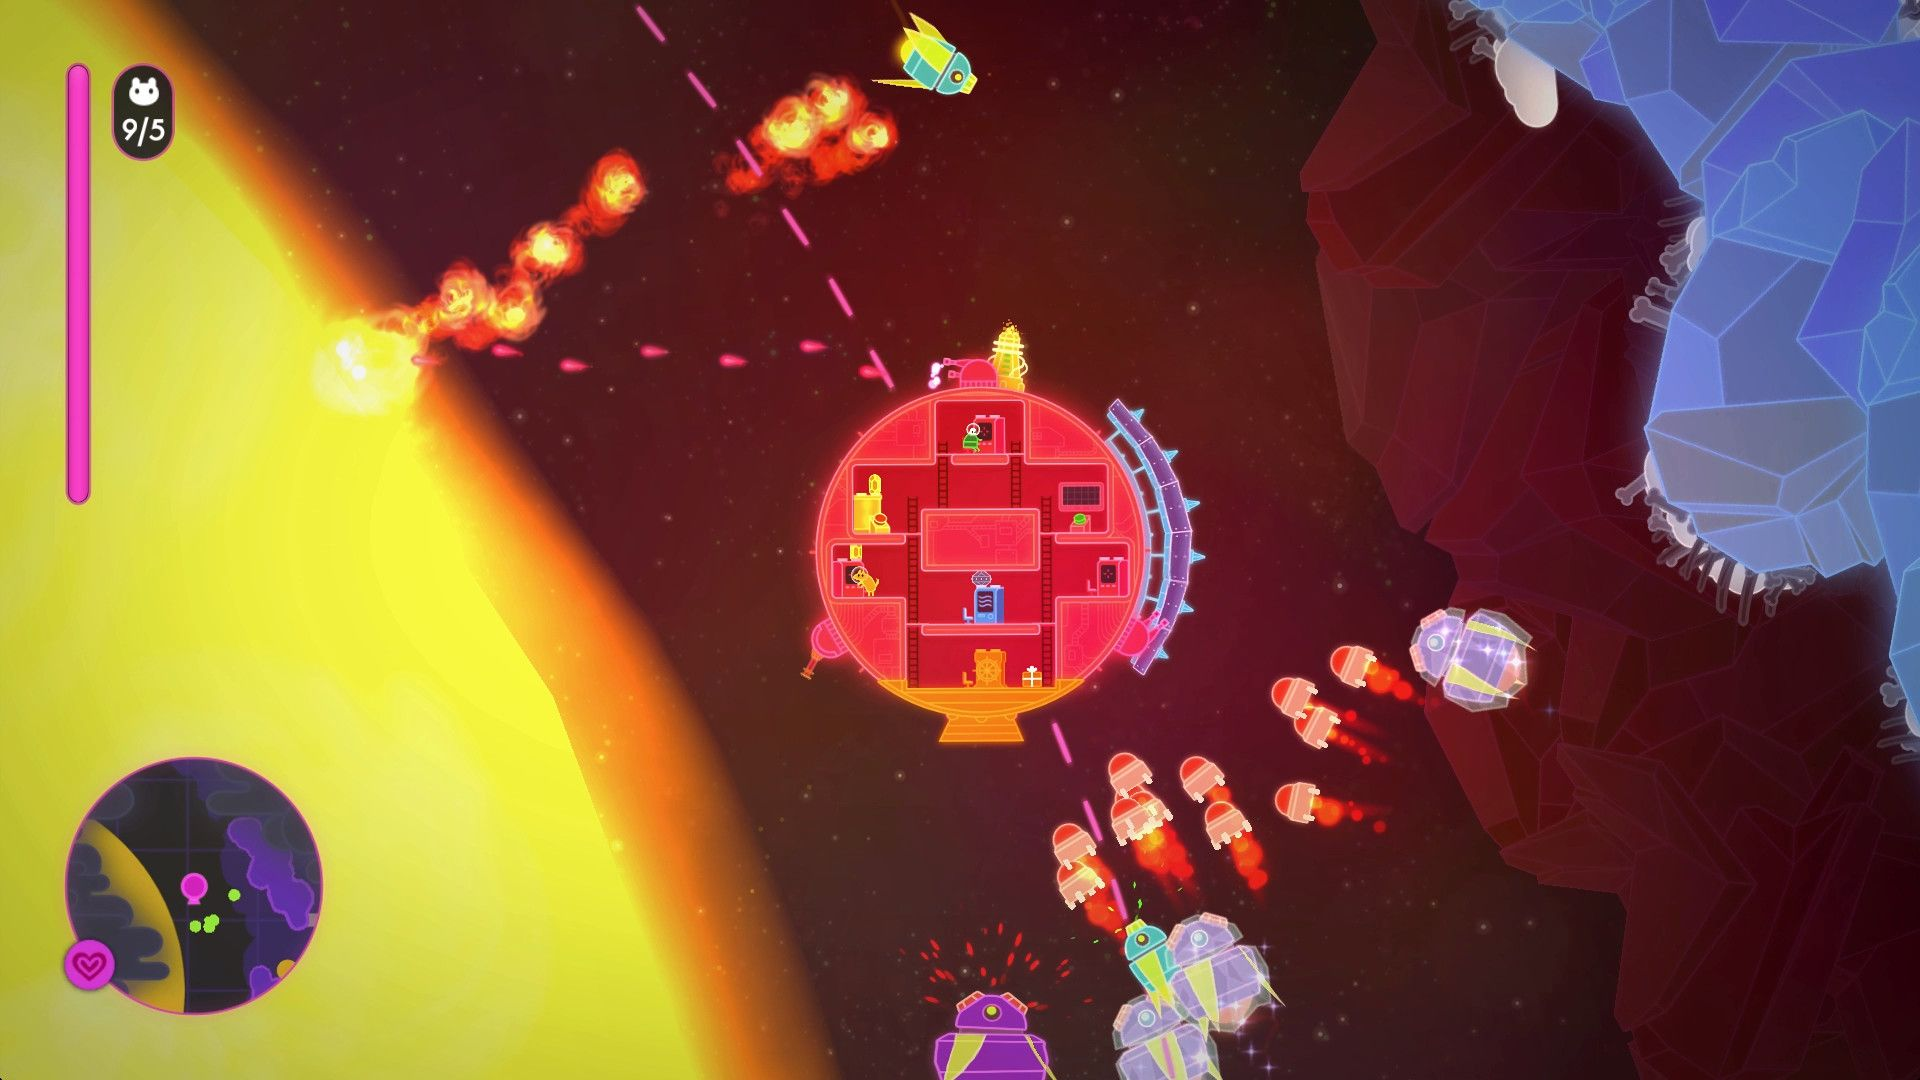 Скриншот Lovers in a Dangerous Spacetime v1.1.4 №3